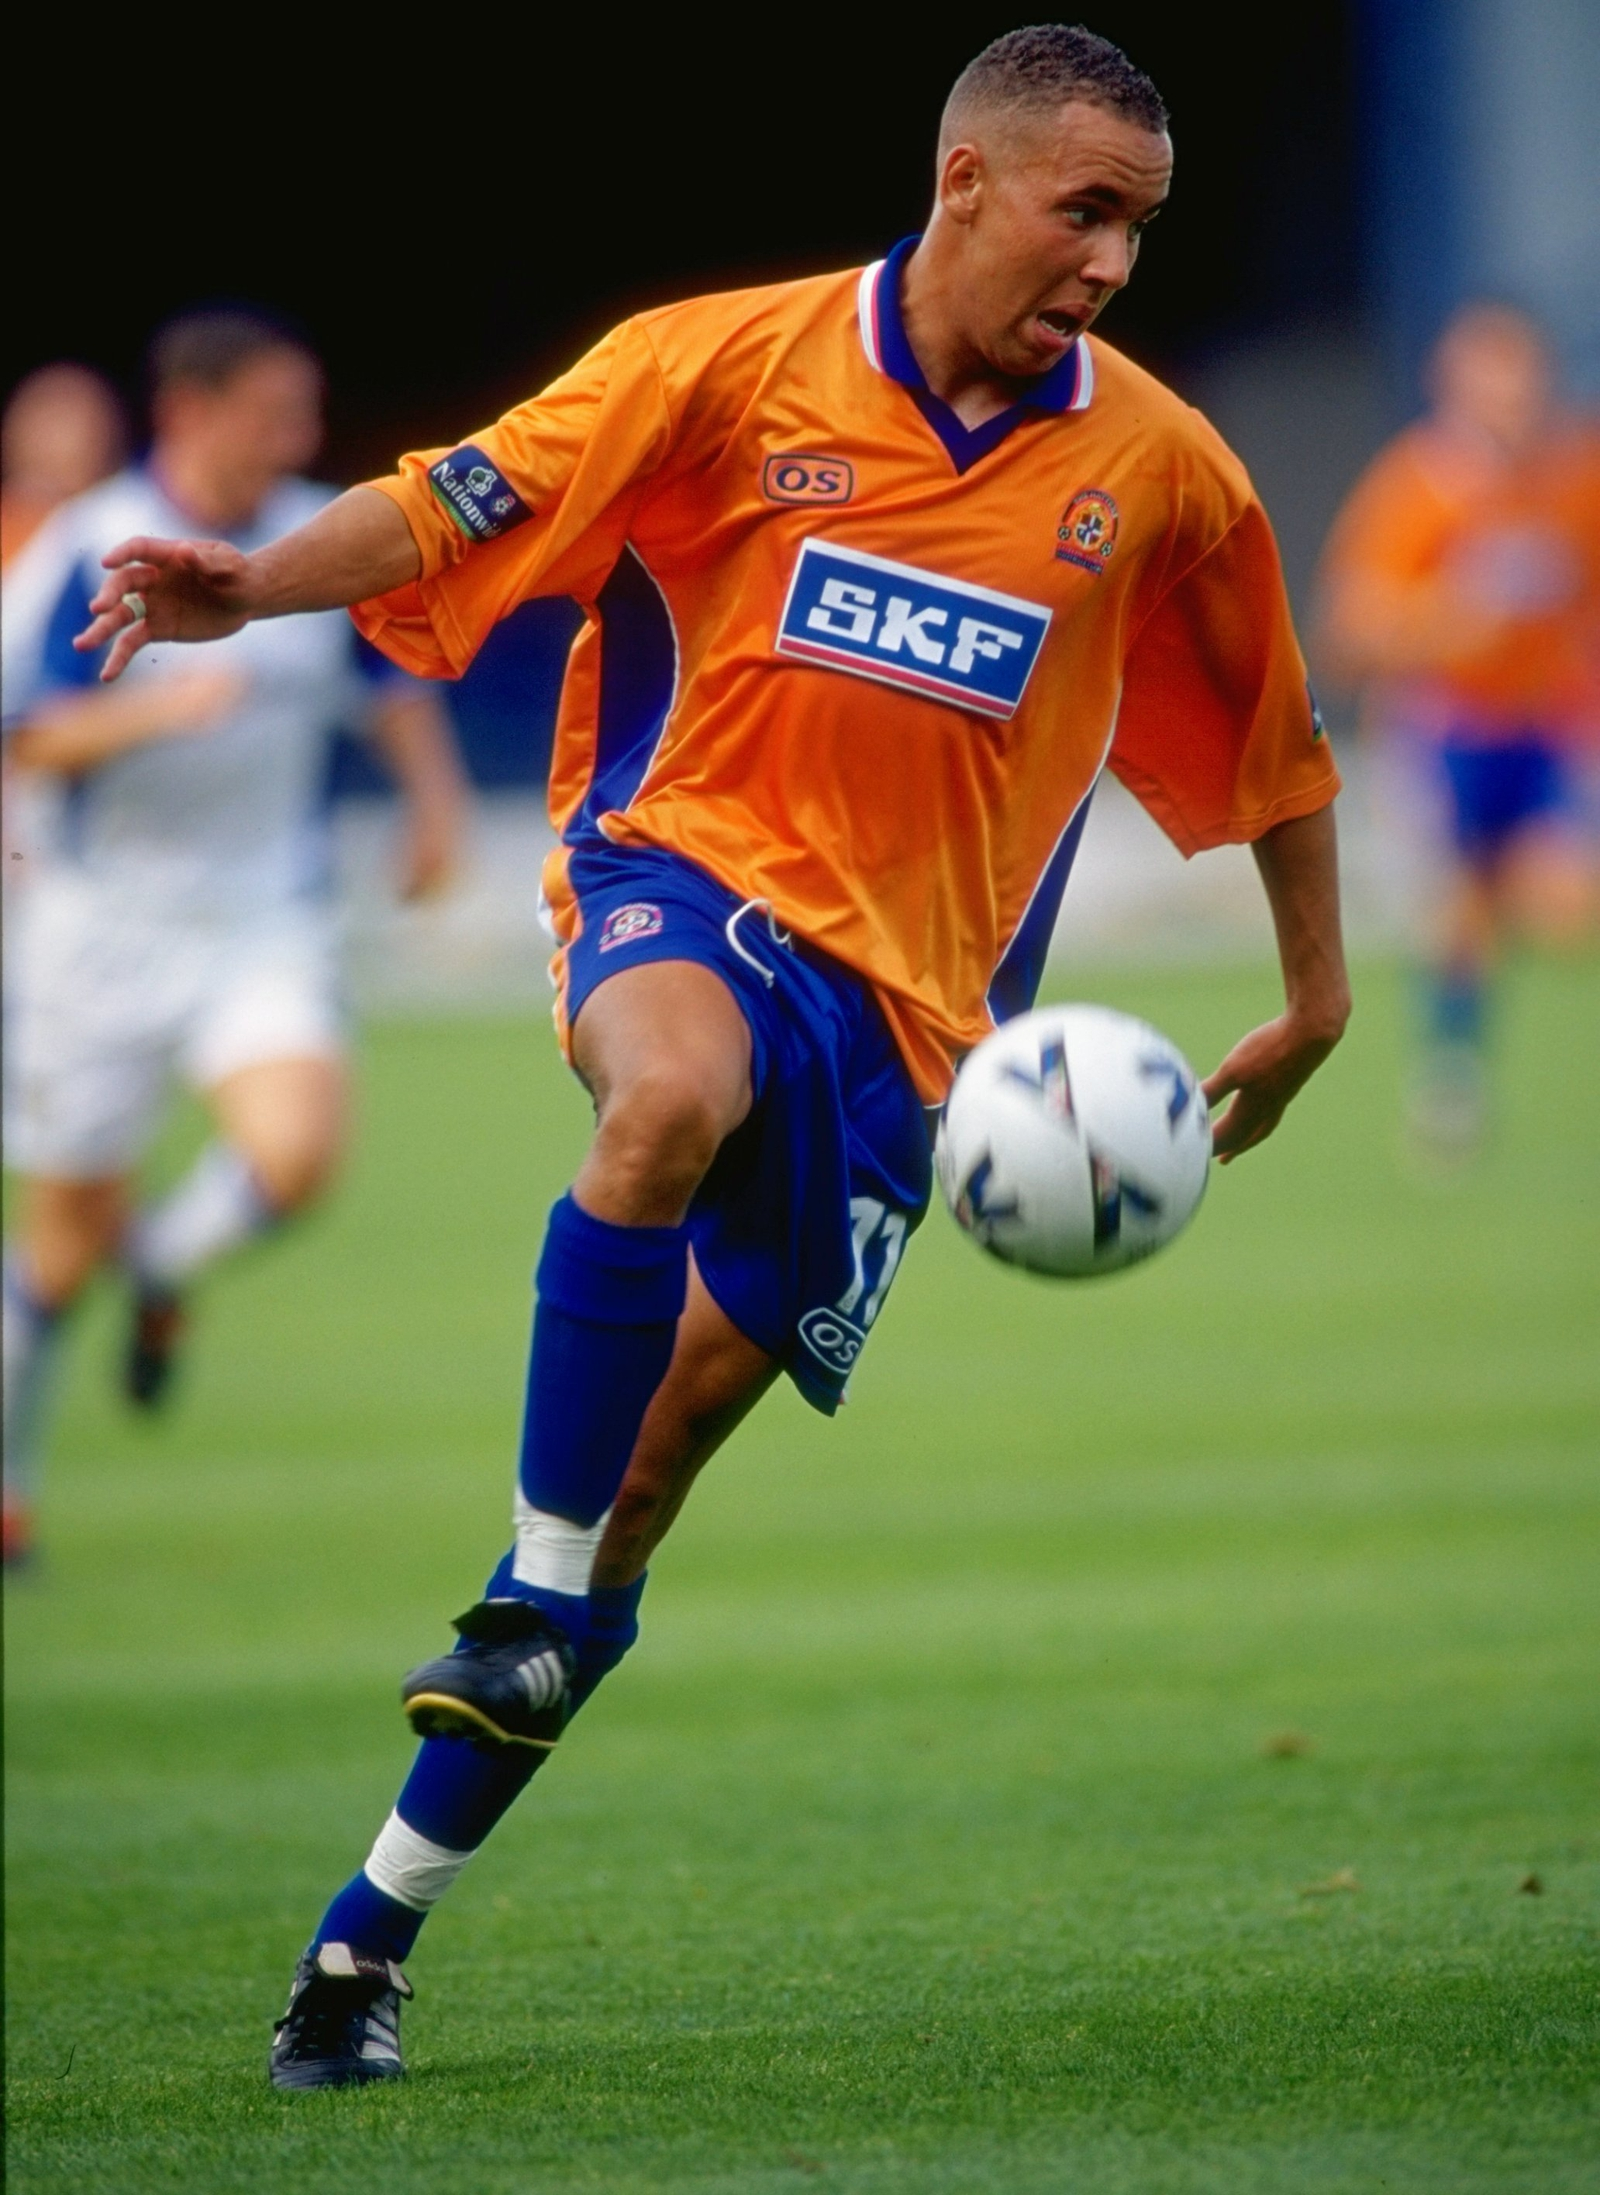 Image - George in action for Luton Town in 1999